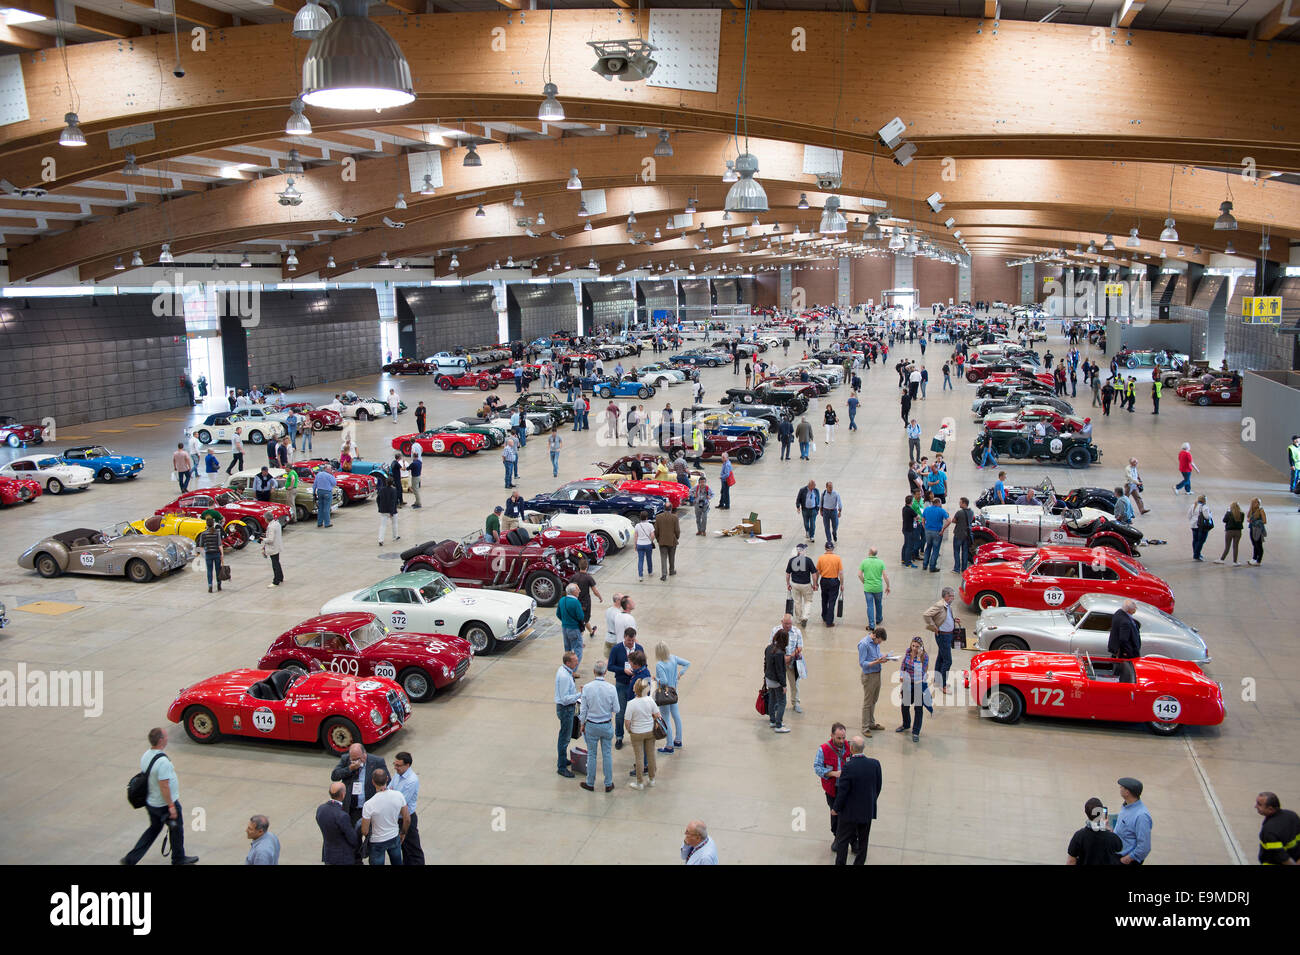 Exhibition hall, exhibition, classic cars, race cars, Mille Miglia ...